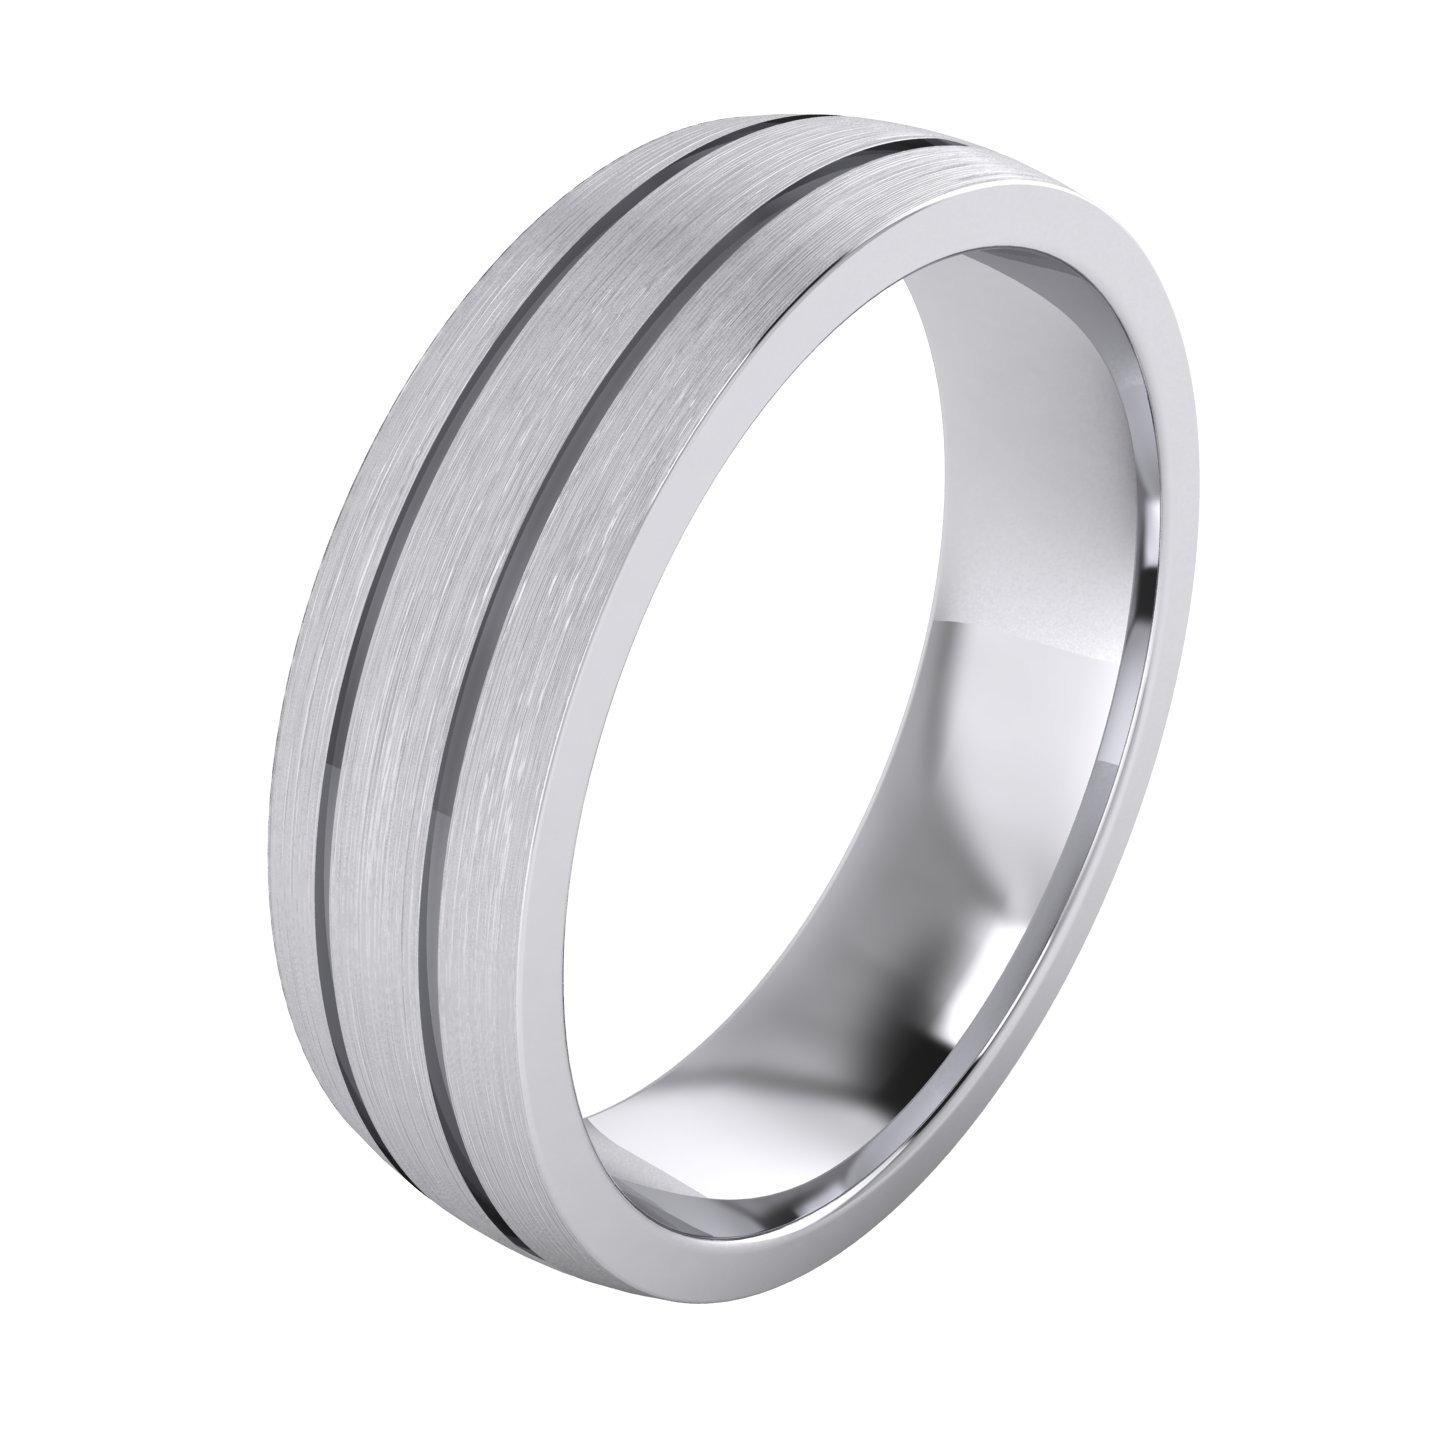 Heavy Solid Sterling Silver 6mm Unisex Wedding Band Comfort Fit Domed Ring Two Grooves Brushed Surface (11.5) by LANDA JEWEL (Image #1)